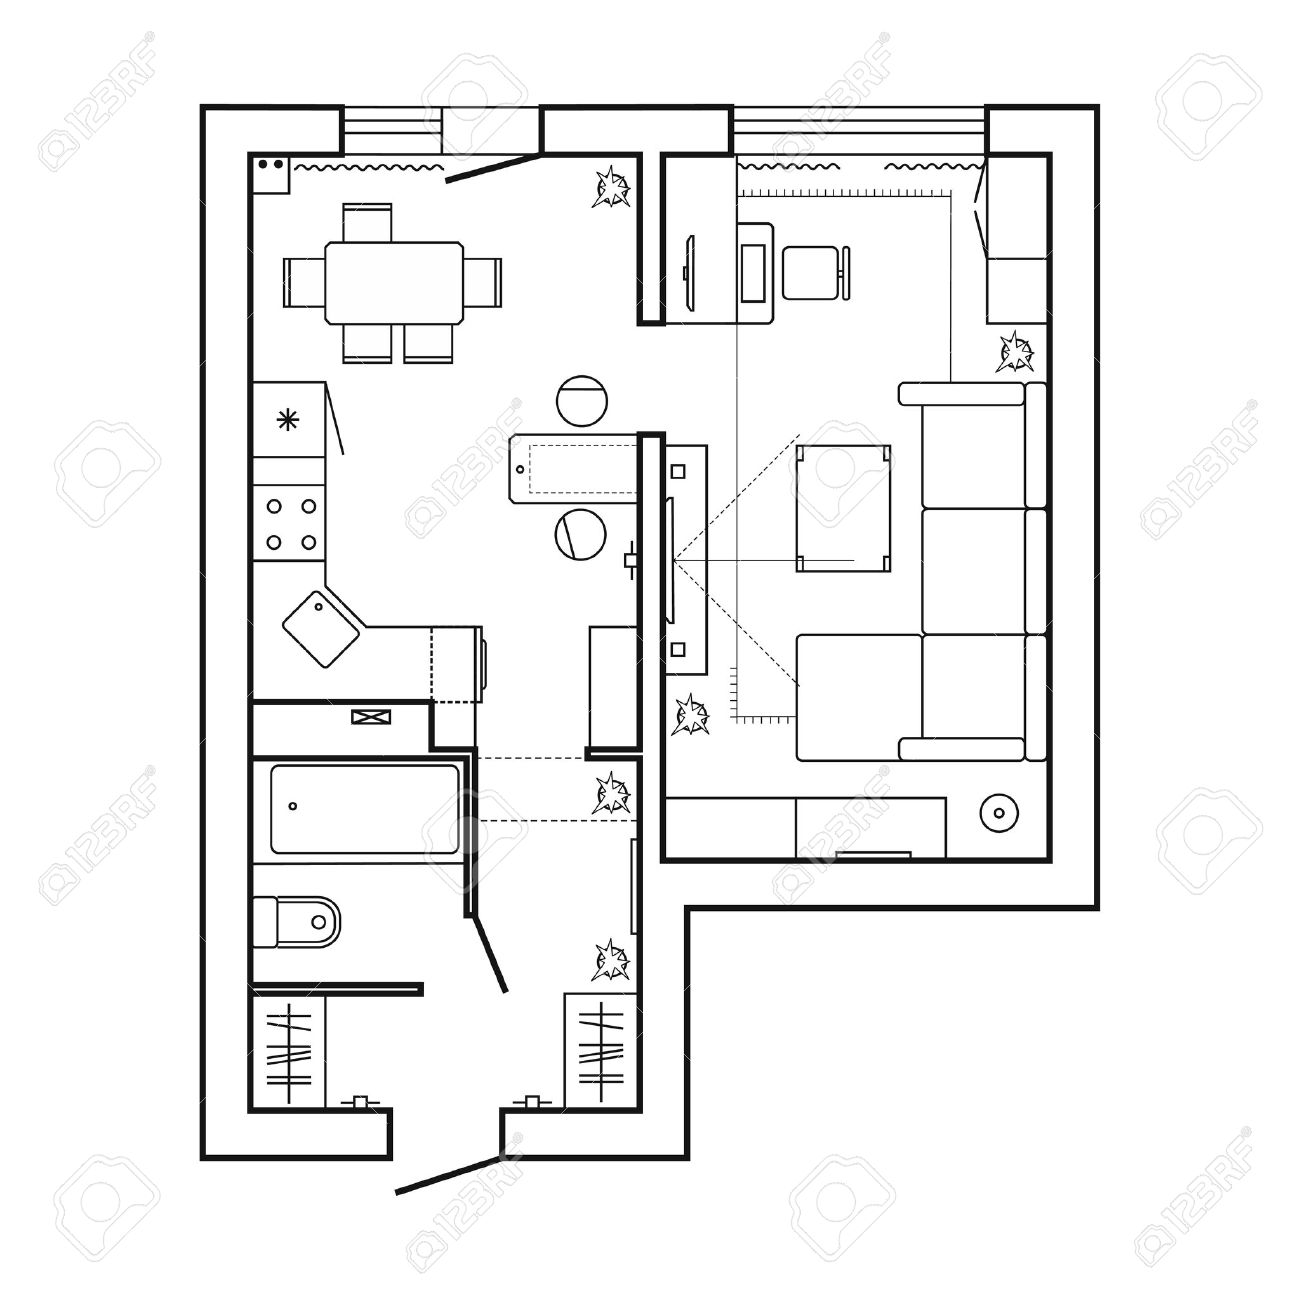 Architecture Plan With Furniture House Floor Plan Kitchen Royalty Free Cliparts Vectors And Stock Illustration Image 81185167